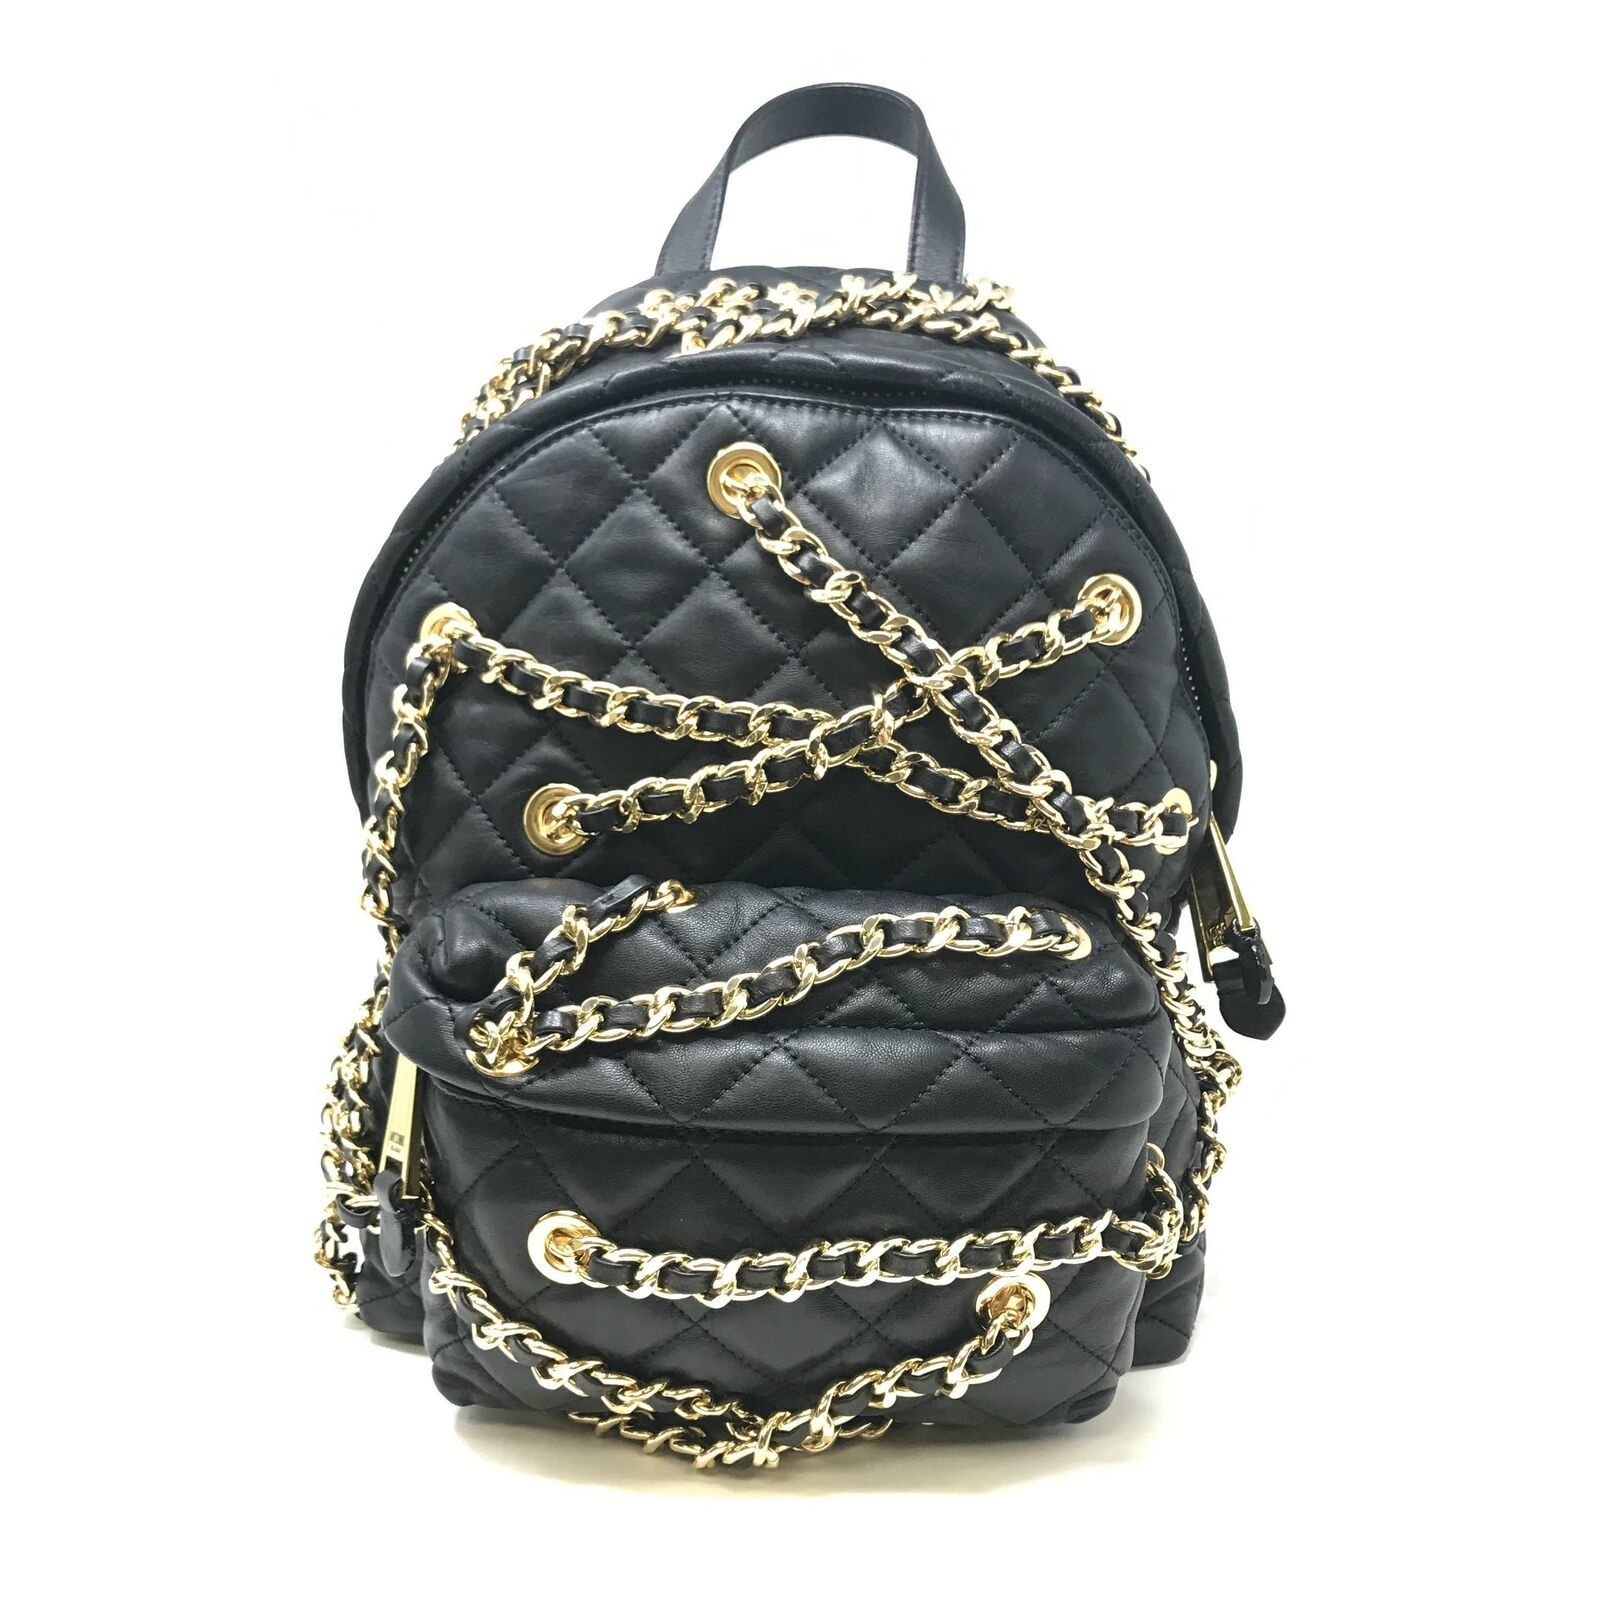 Primary image for Moschino Women's Metallic Quilted Leather Backpack With Gold-Tone Chains